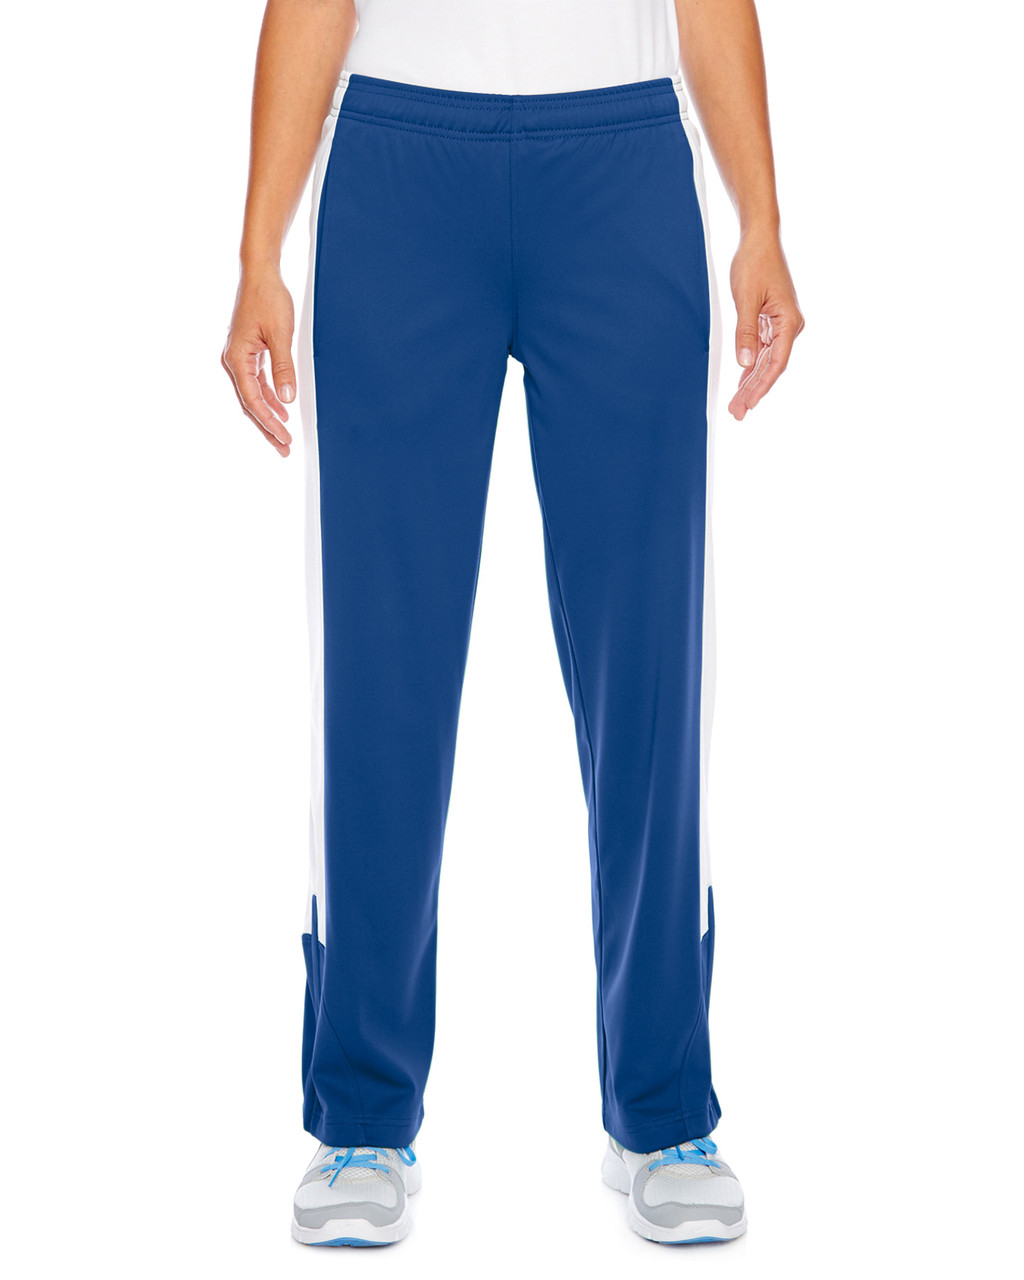 Royal/White - TT44W Team 365 Ladies' Performance Fleece Pant | Blankclothing.ca